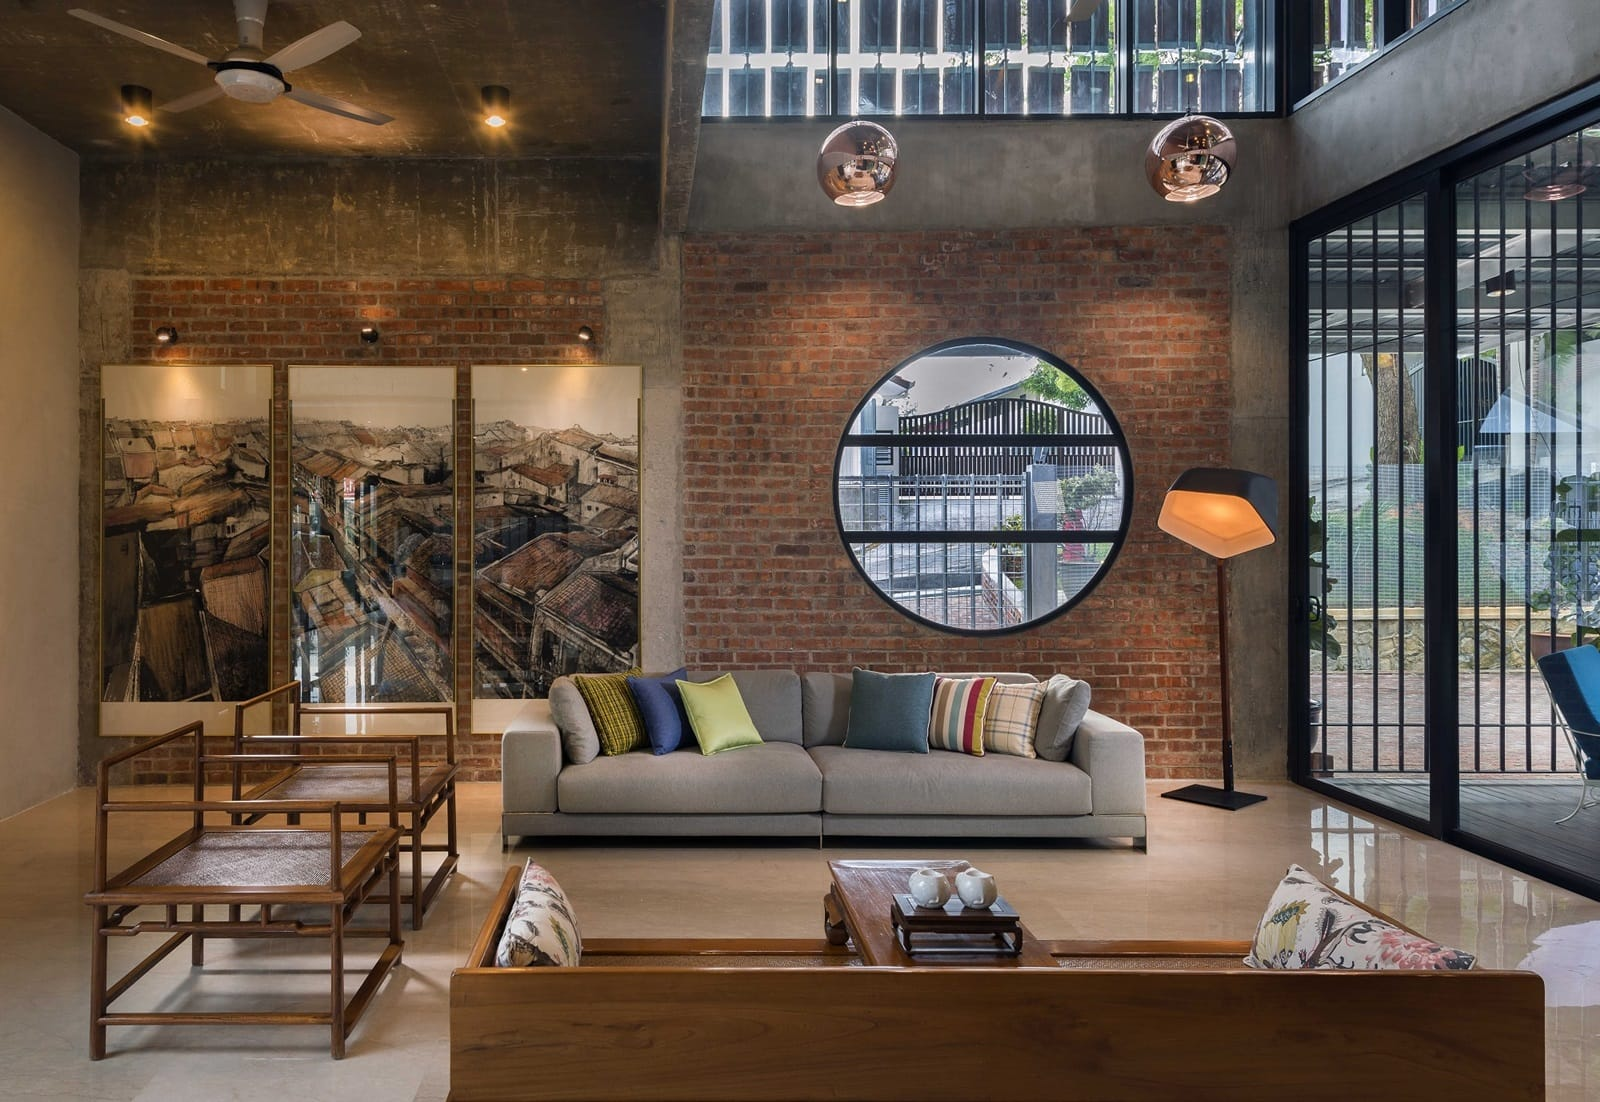 Rustic styled living area features red brick walls and exposed concrete finishes.